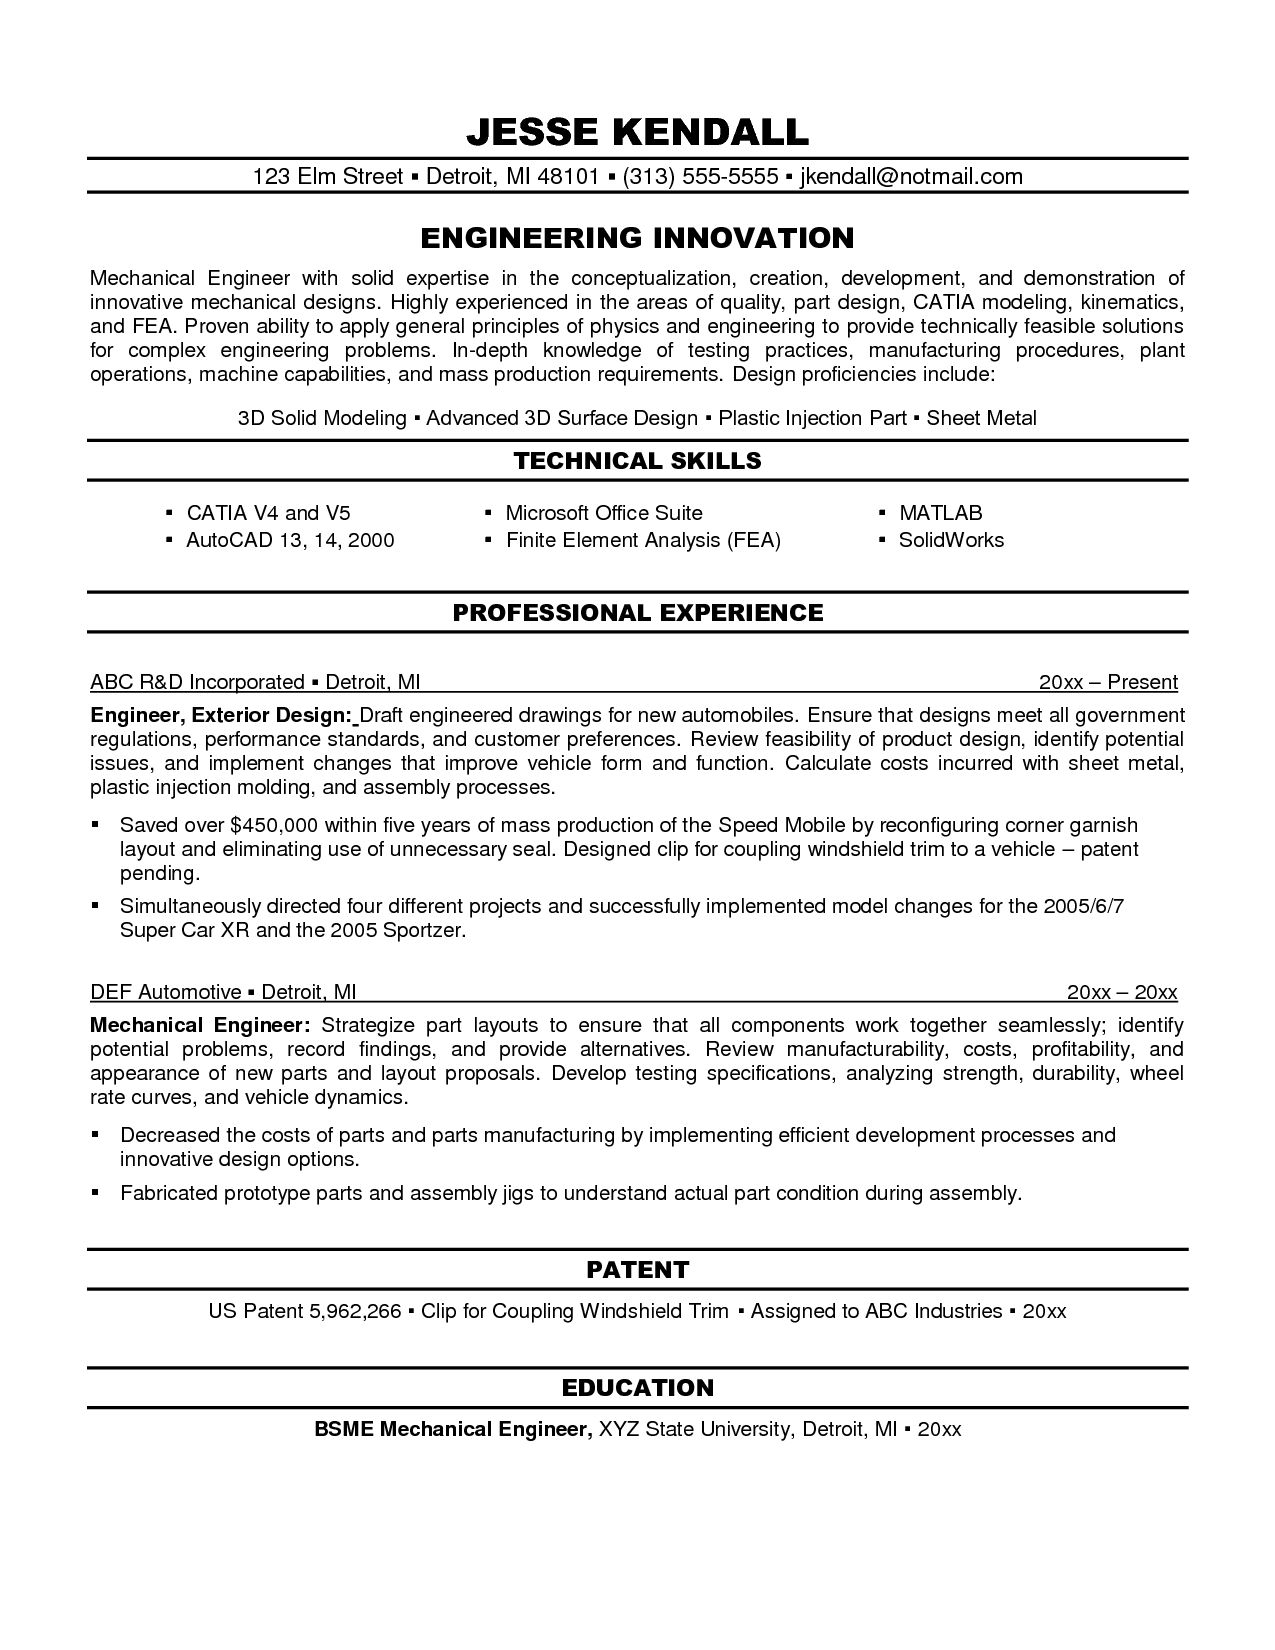 mechanical design engineer resume cover letter - Orgsan ...